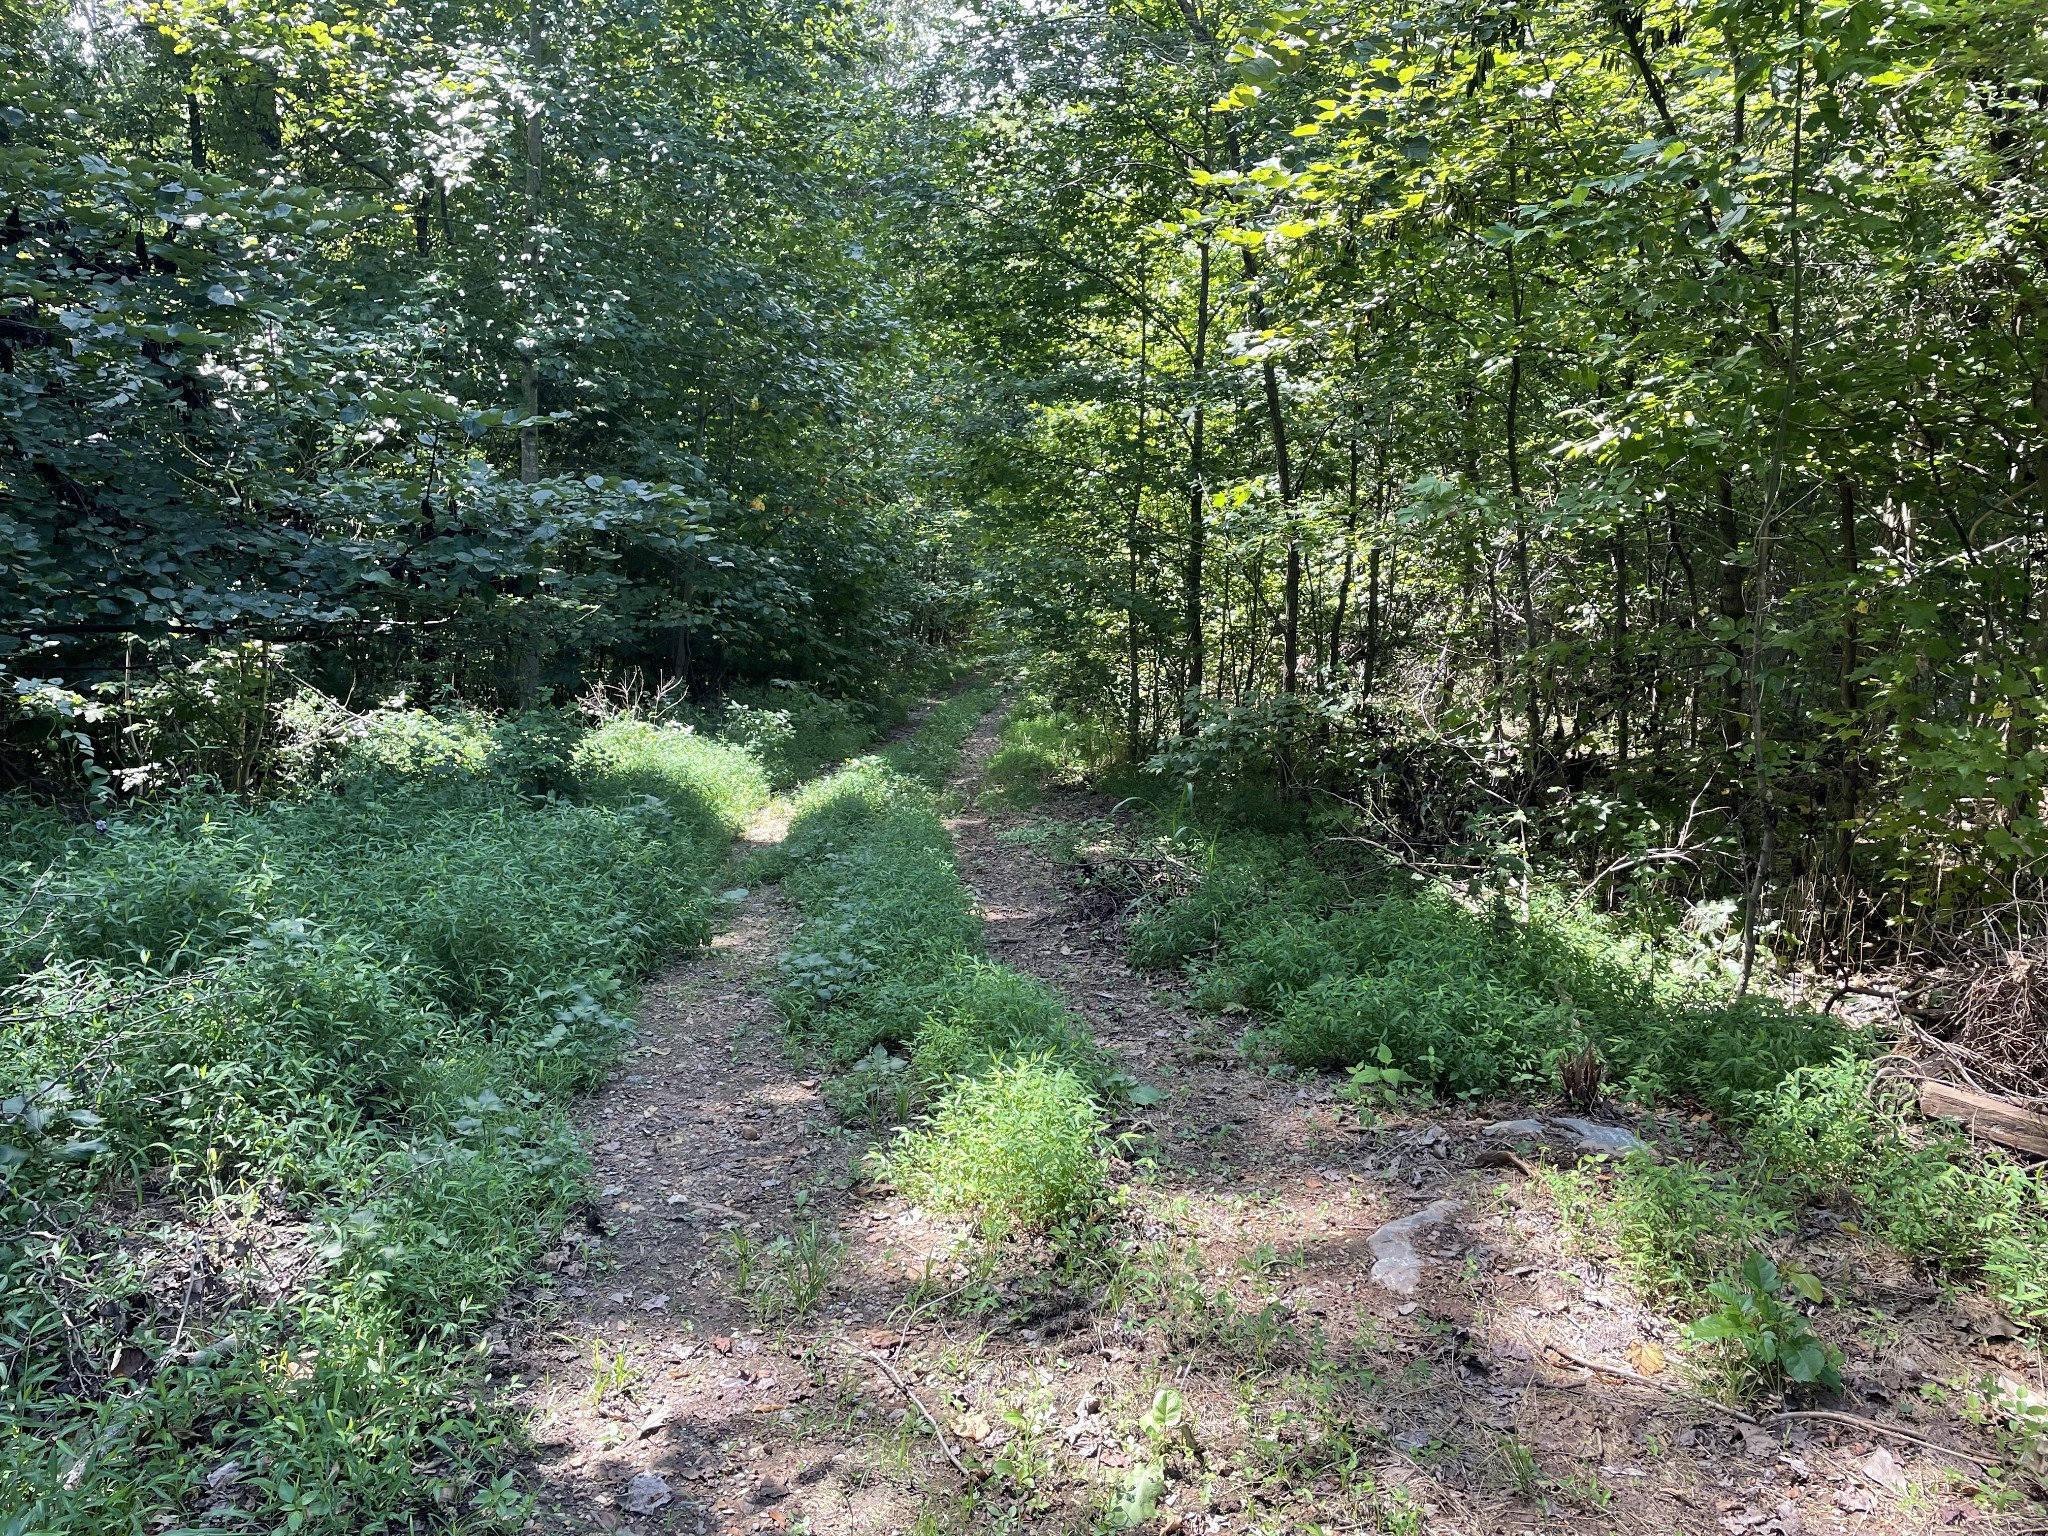 50 ACRES ZONED AG IN THE CITY. PART OF THE CITY'S OPPORTUNITY ZONE WITH POTENTIAL TAX ADVANTAGES. NO OTHER CURRENT RESTRICTIONS. 2 SEPARATE ACCESS POINTS OFF OVERTON DRIVE.